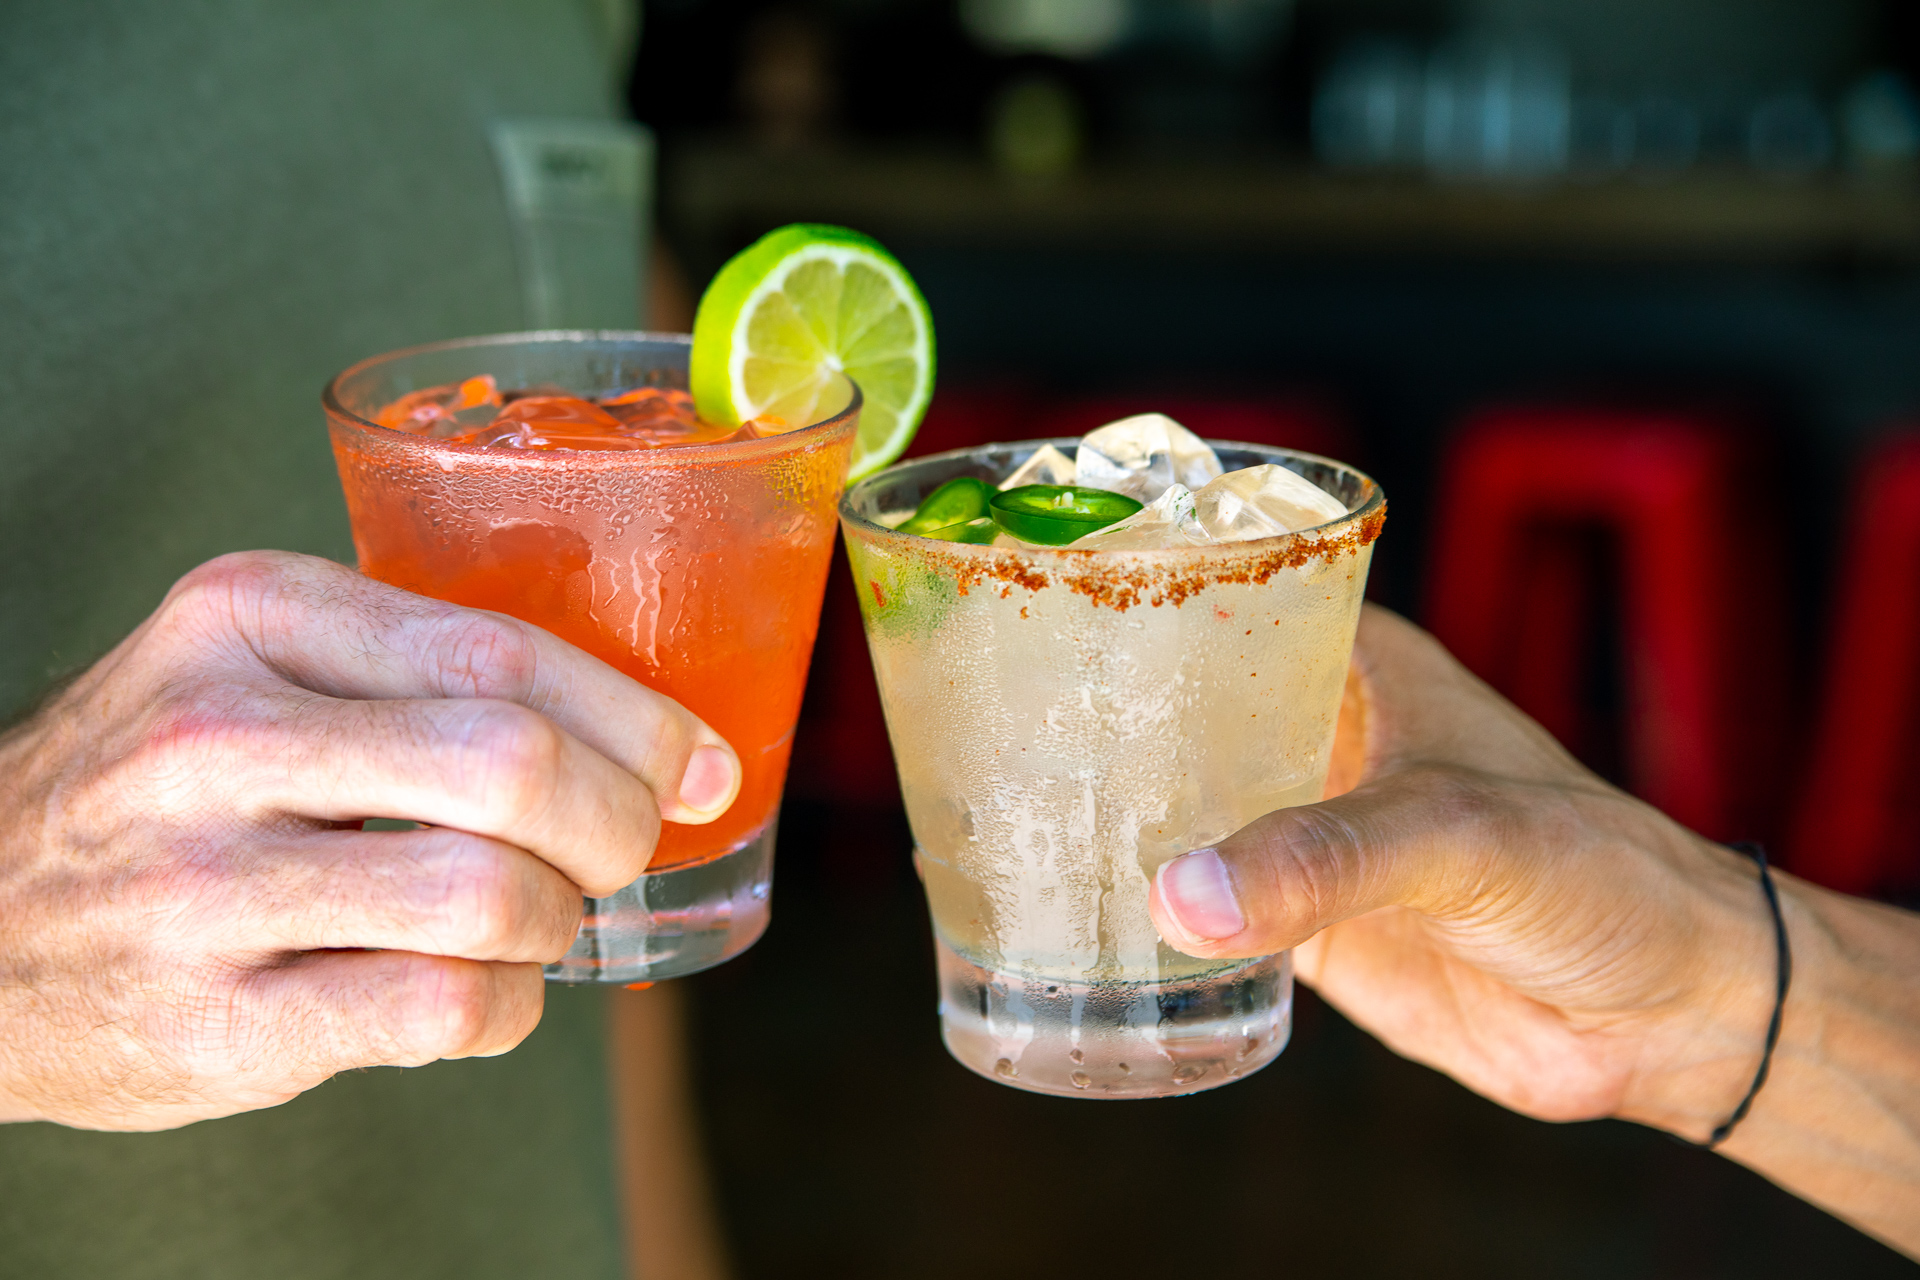 Two margaritas being held together in a cheers by two people